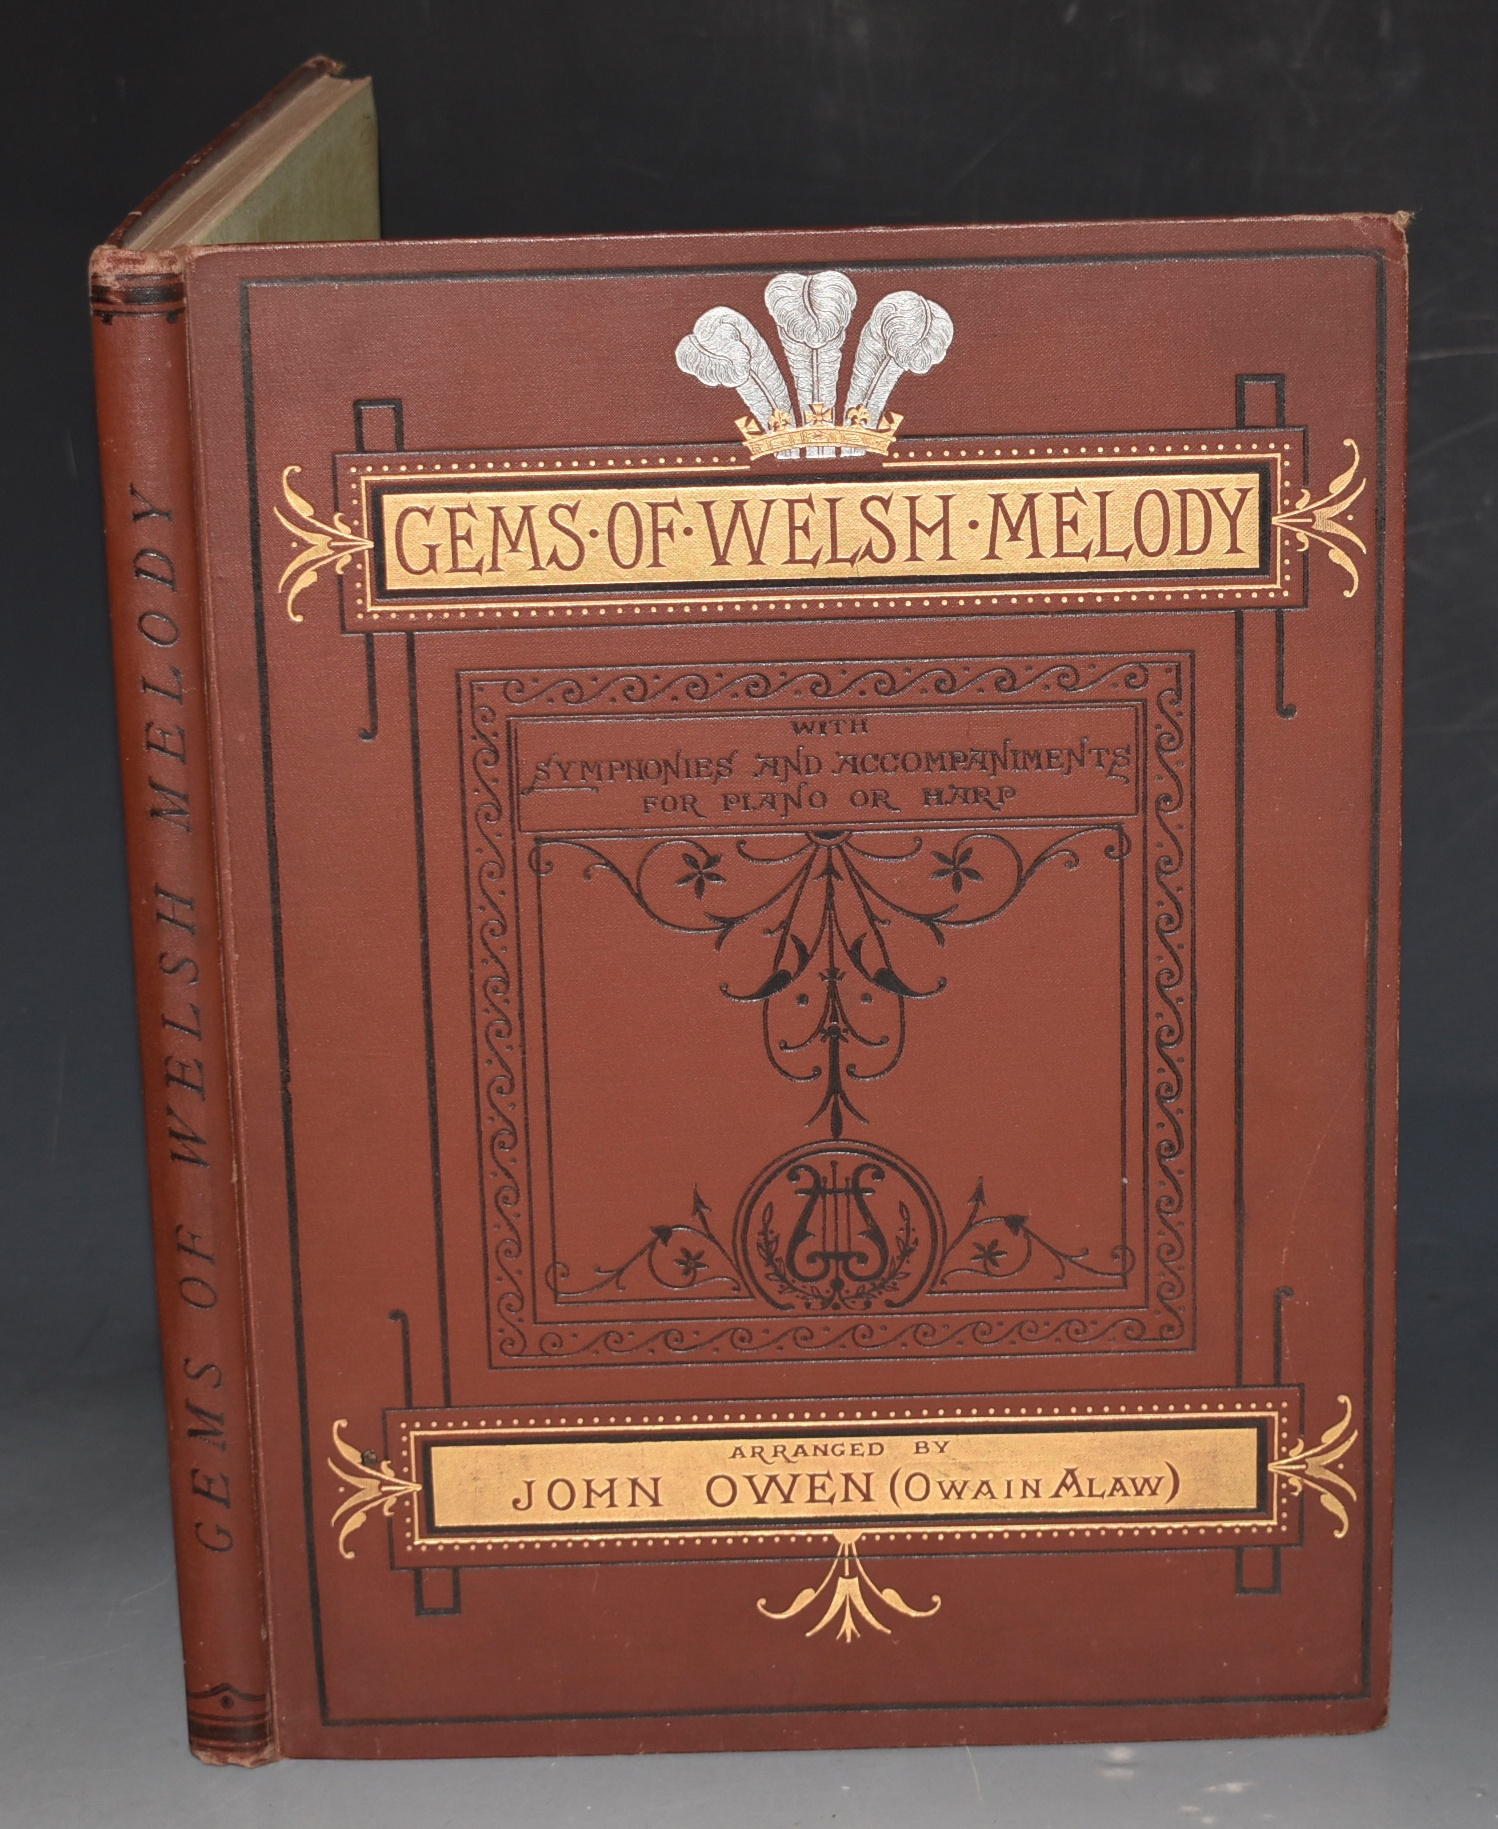 Image for Gems of Welsh Melody. A Selection of Popular Welsh Songs, with English and Welsh Words; Specimens of Pennillion Singing, after the Manner of North Wales, and Welsh National Airs, Ancient and Modern. With symphonics and accompaniments for Piano of Harp.